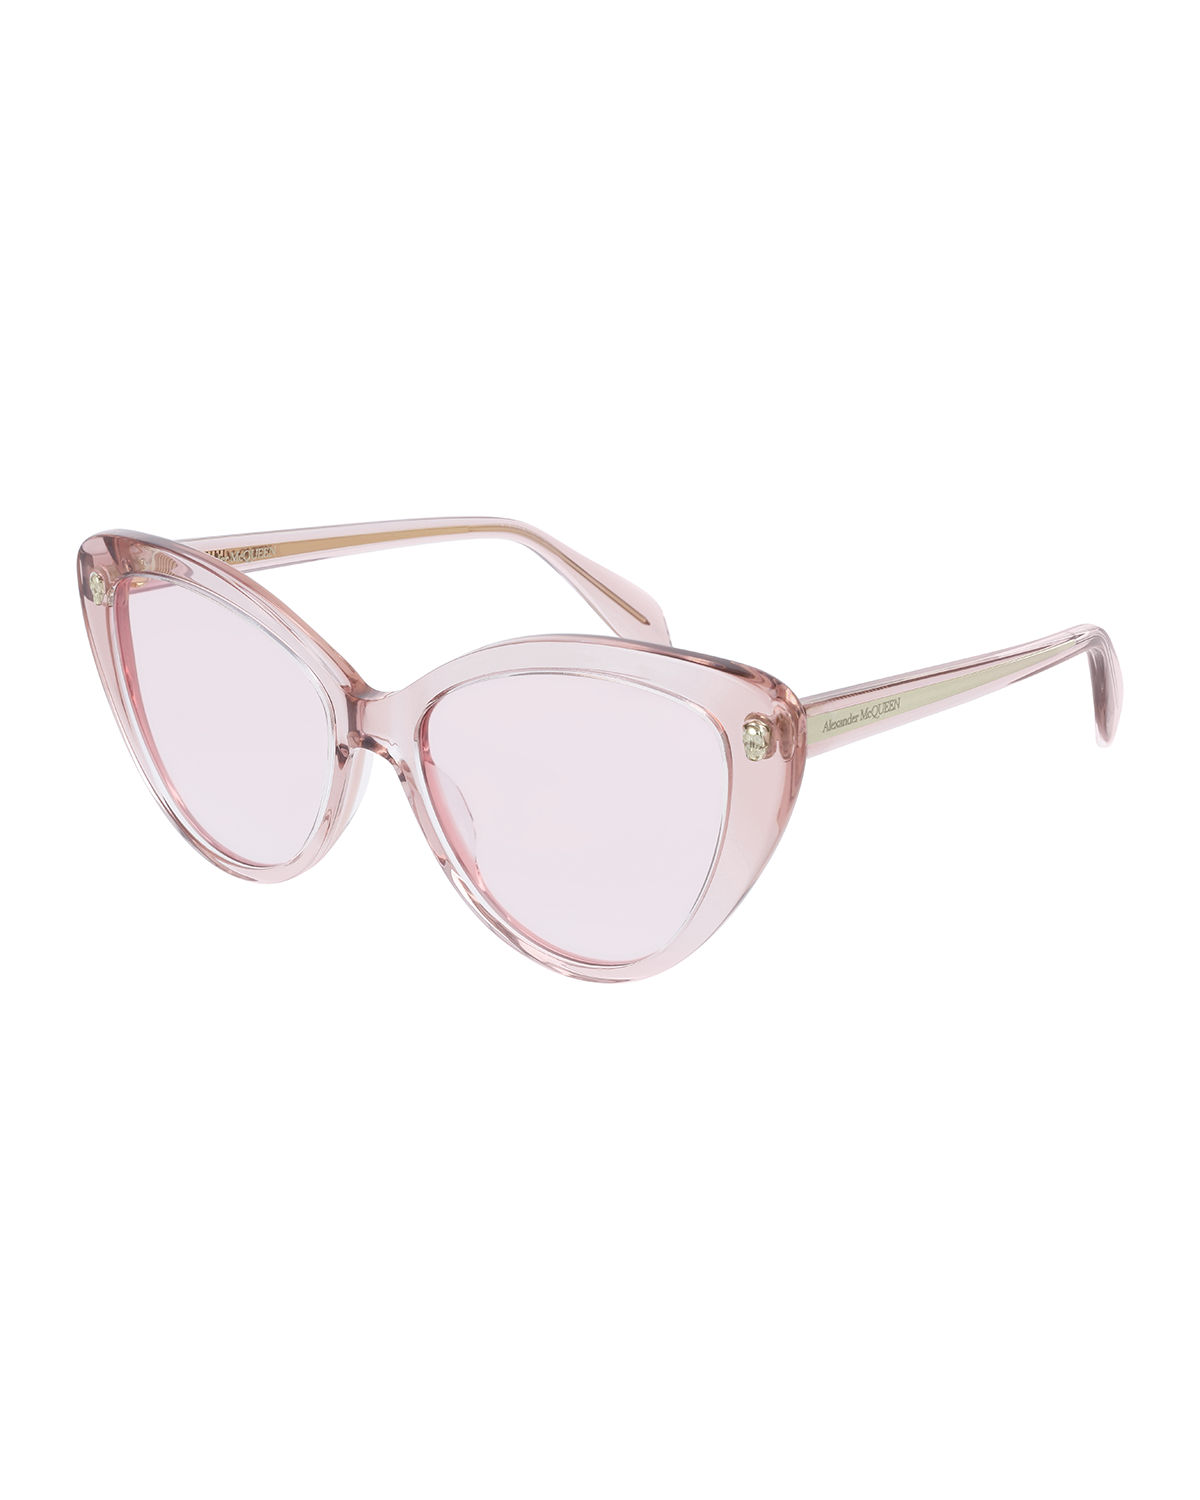 Alexander Mcqueen Sunglasses CAT-EYE ACETATE SUNGLASSES